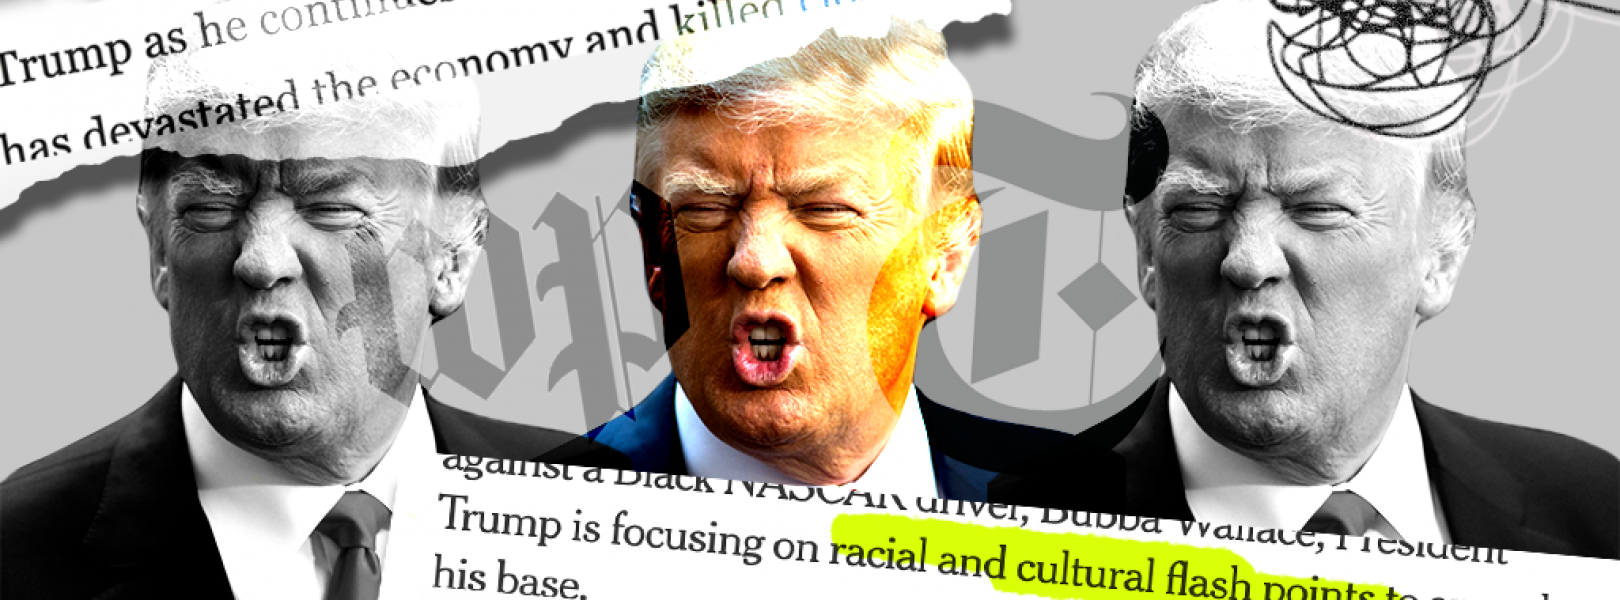 "Mainstream media often refuses to call out racism instead using euphemisms like ""racially charged"""